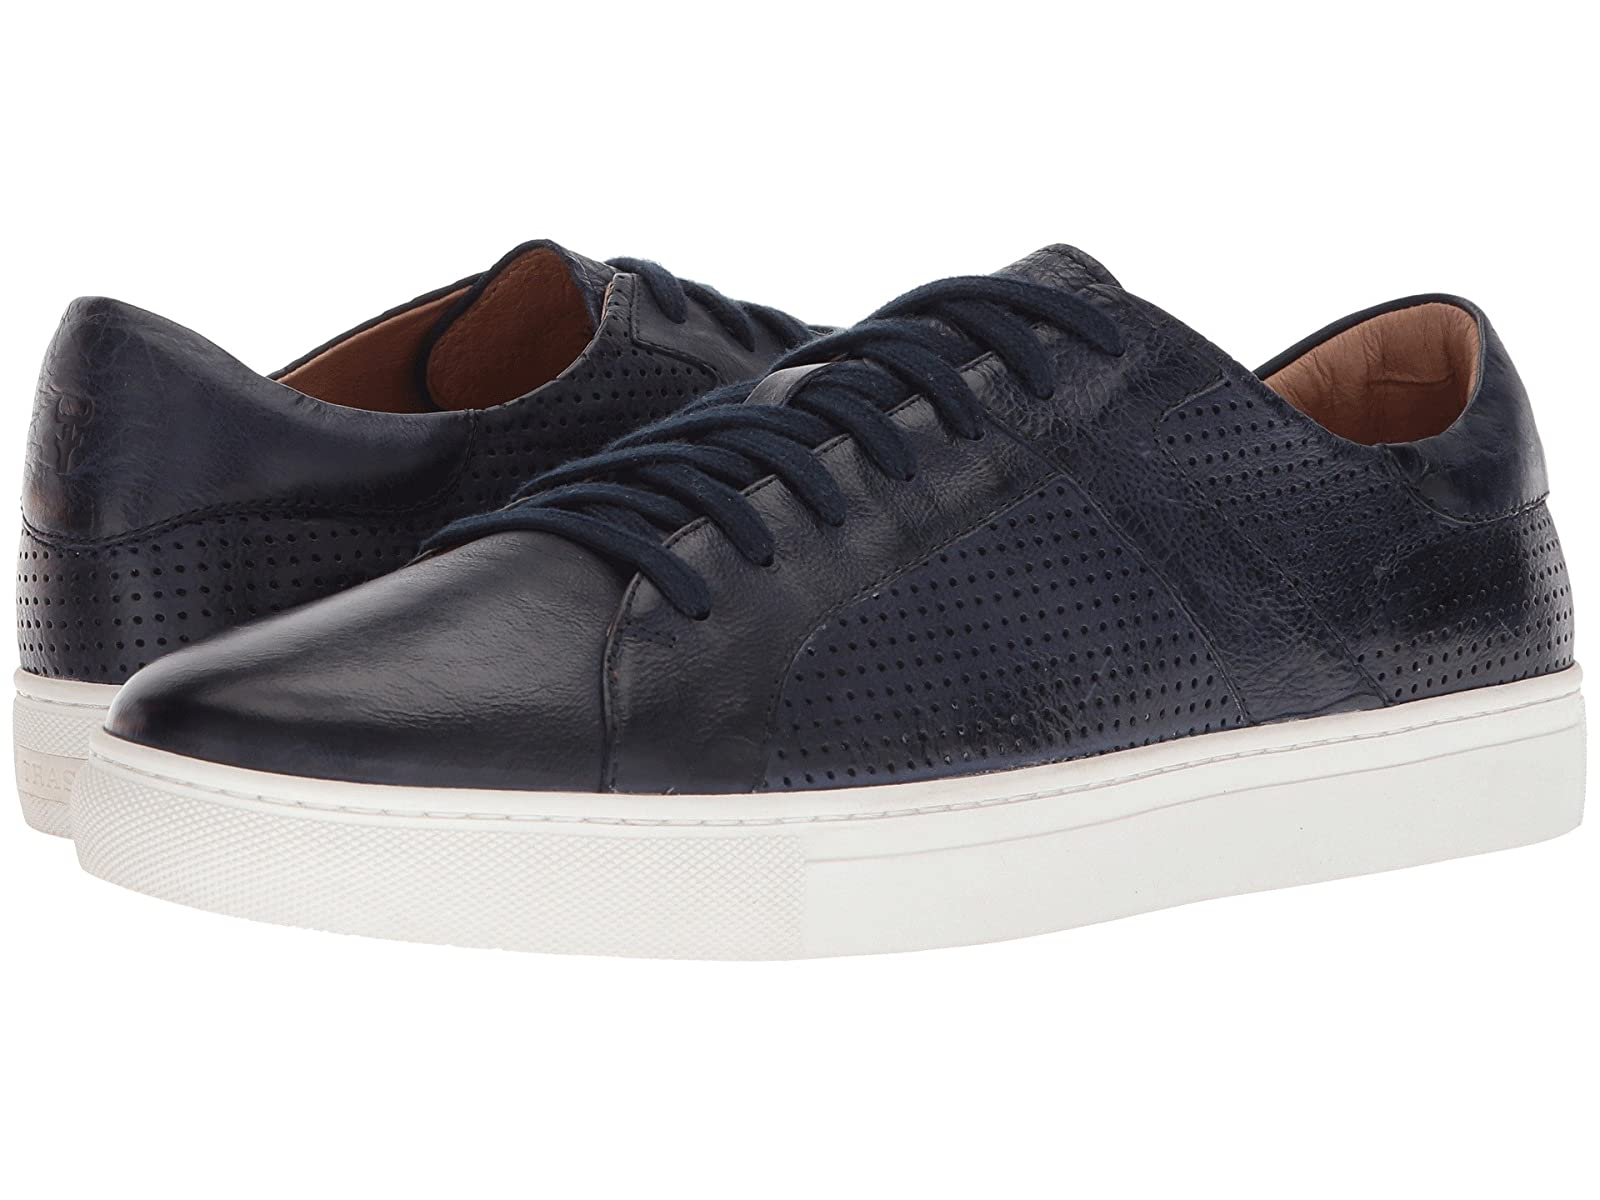 Trask AaronAtmospheric grades have affordable shoes